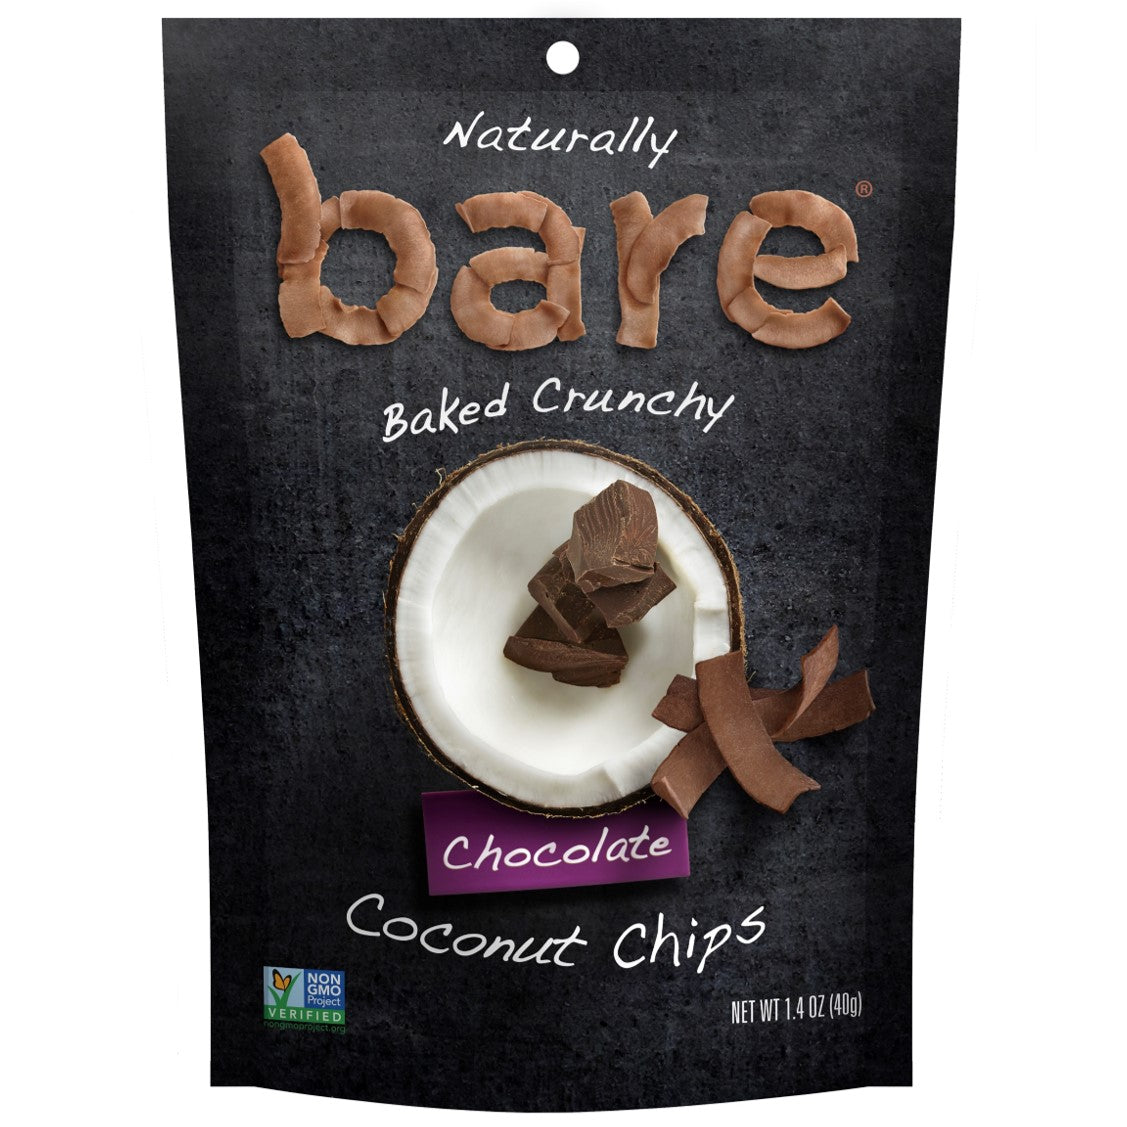 Bare Fruit 100% Natural Crunchy Chocolate Coconut Chips,40g.